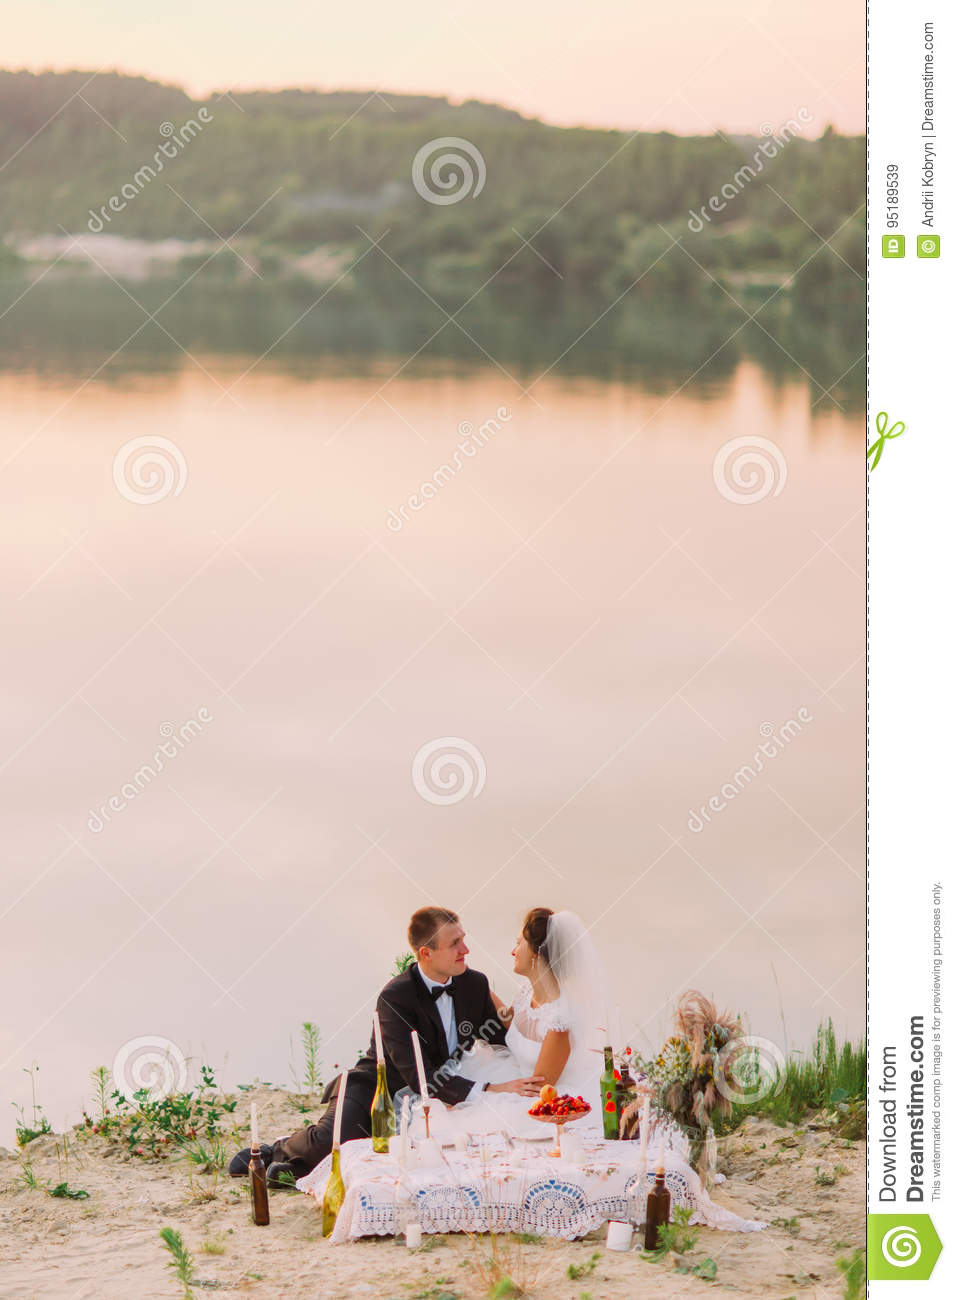 The cheerful newlywed couple is enjoying the wedding picnic at the background of the magnificent river.